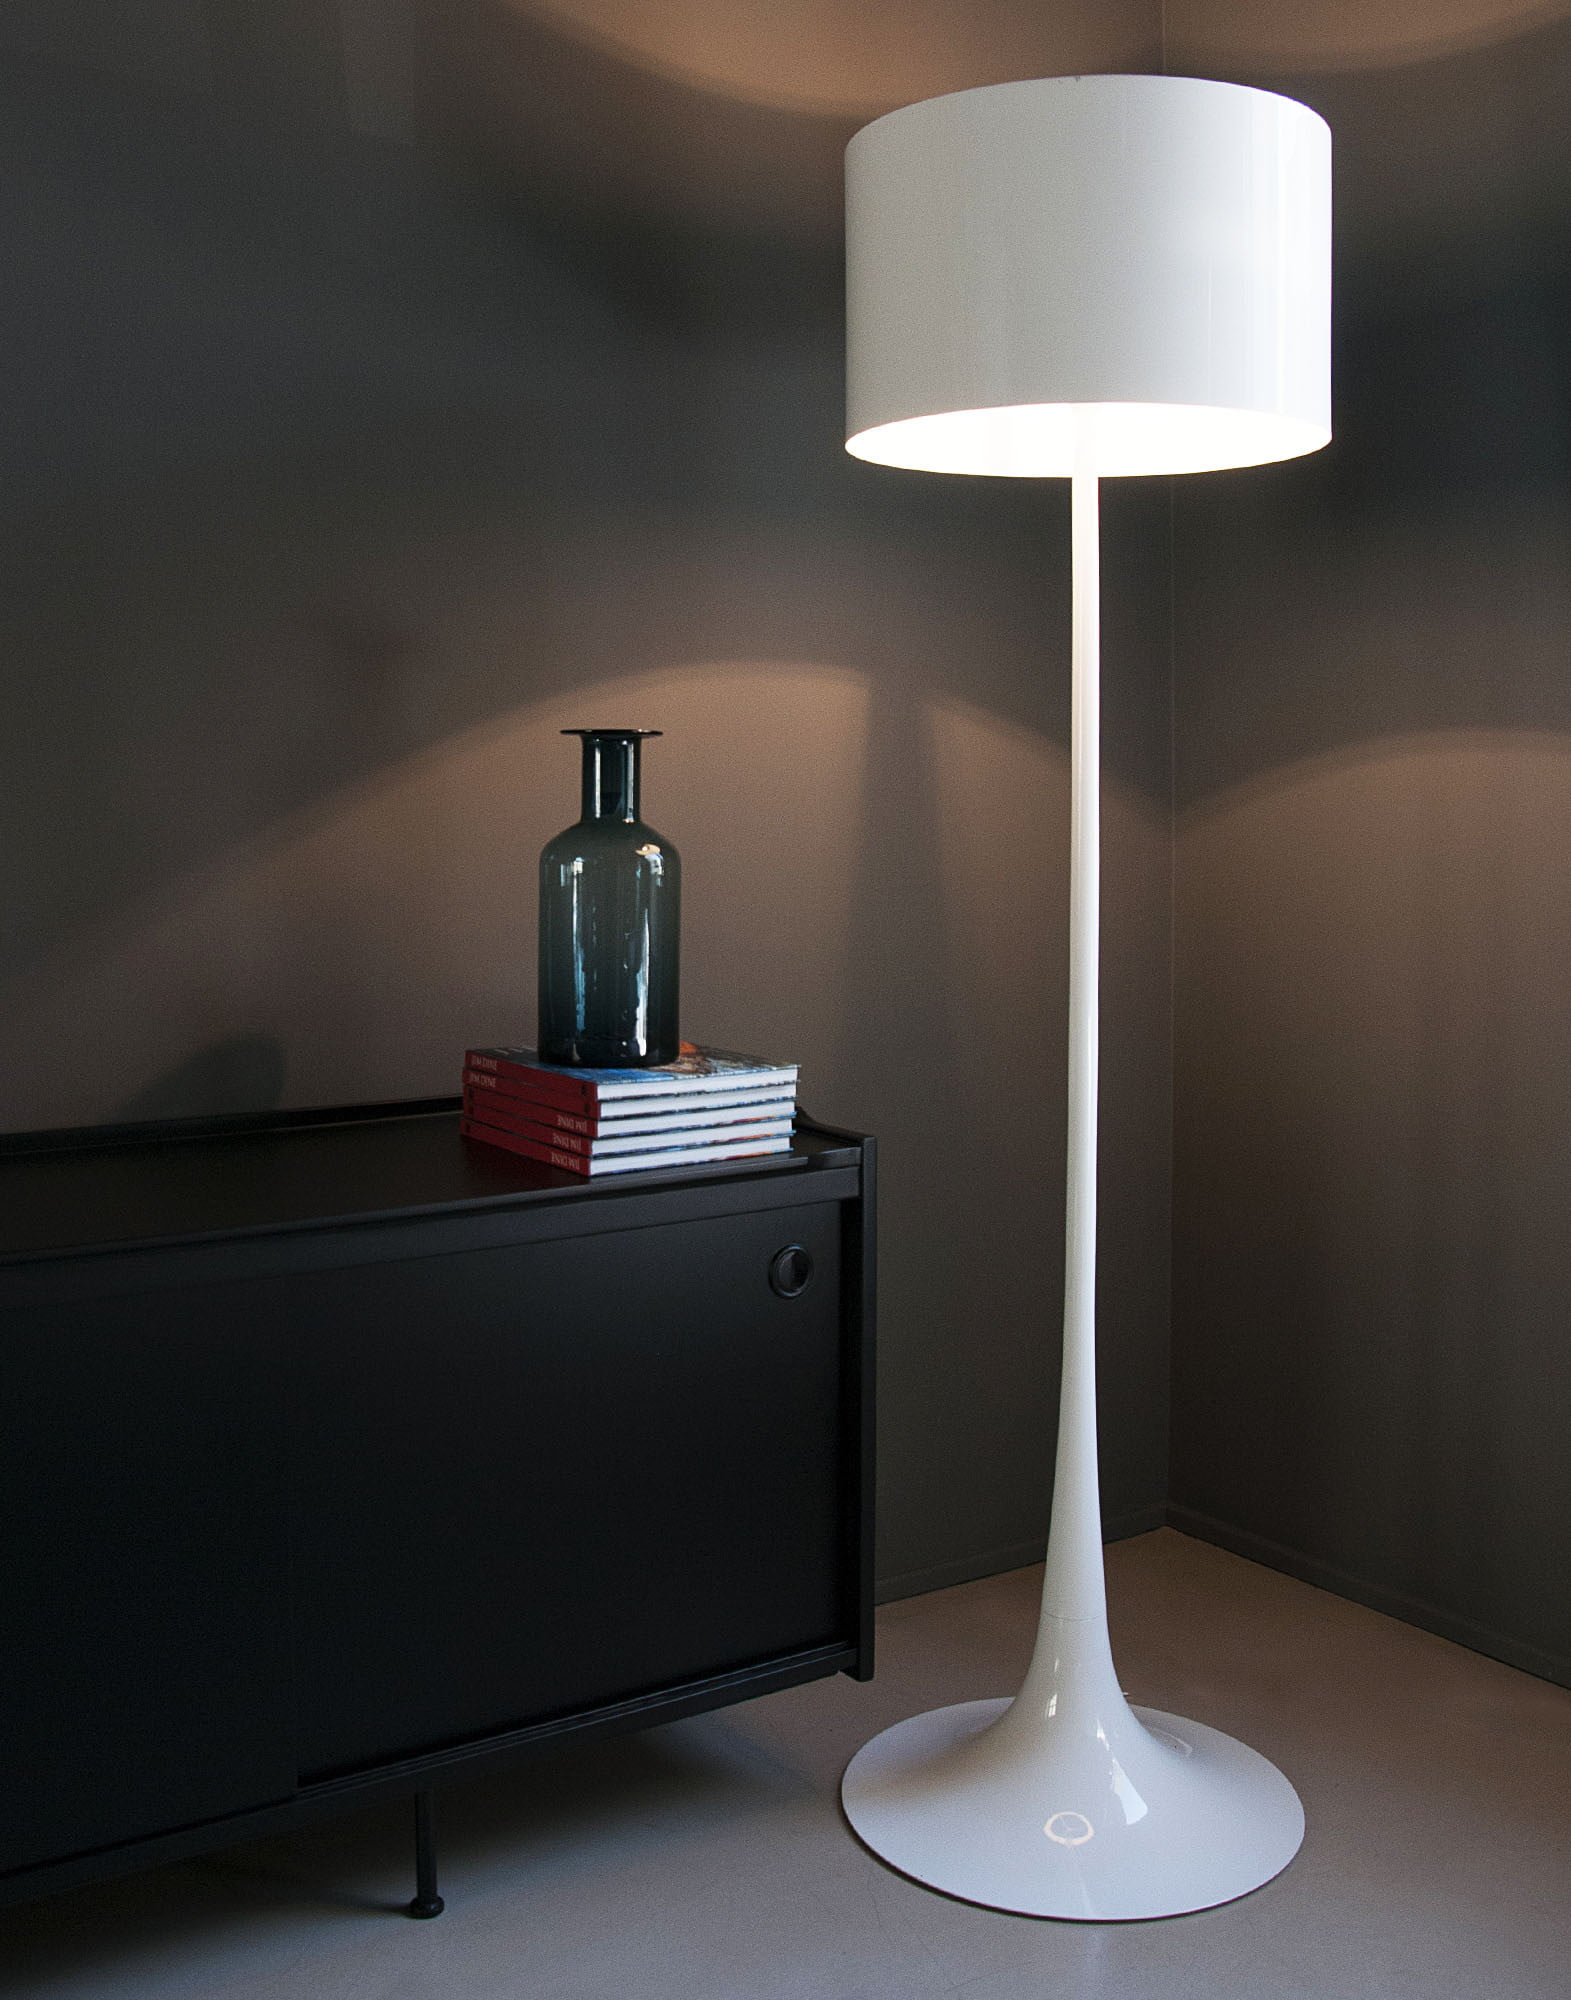 Flos Spun Floor Lamp | FurnishPlus